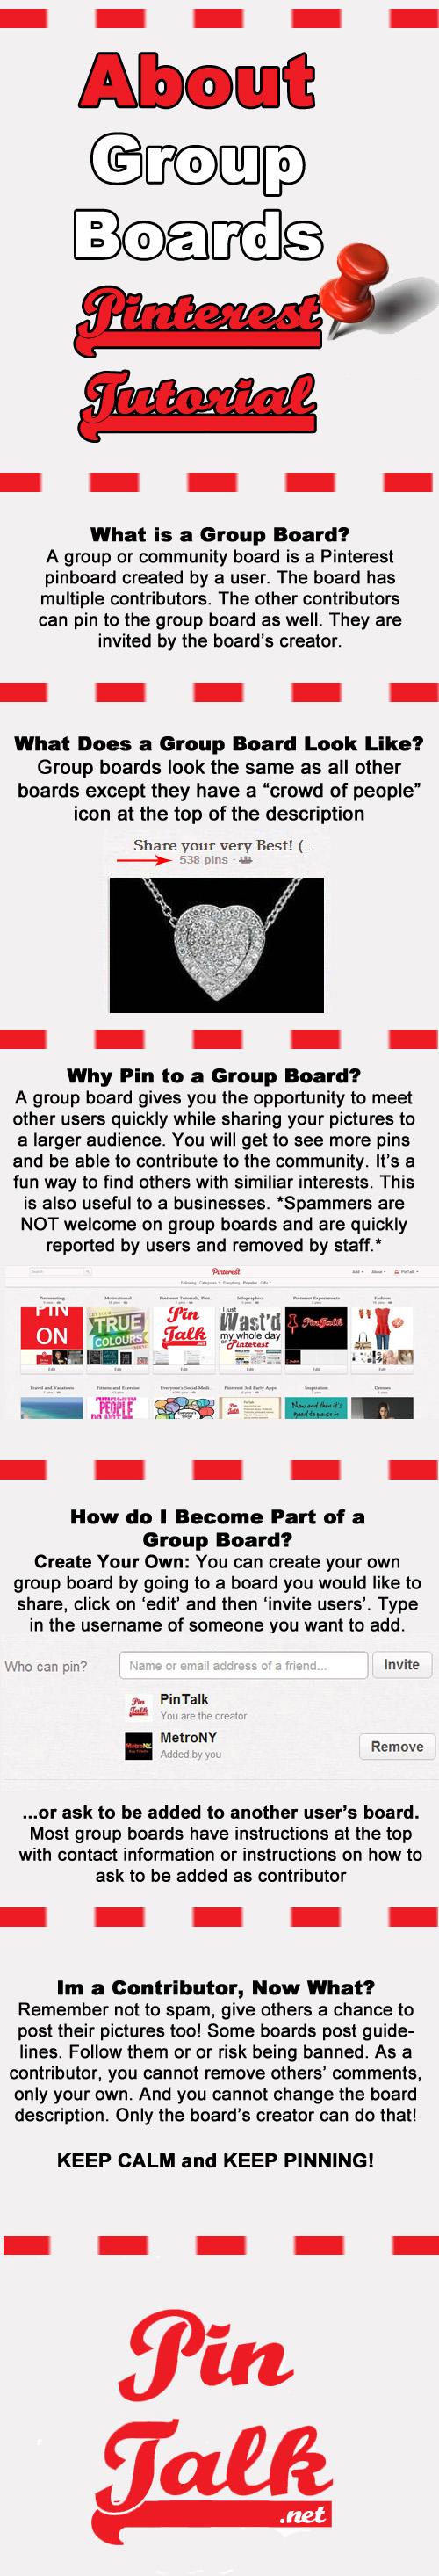 Pinterest-Tutorial-Group-Boards